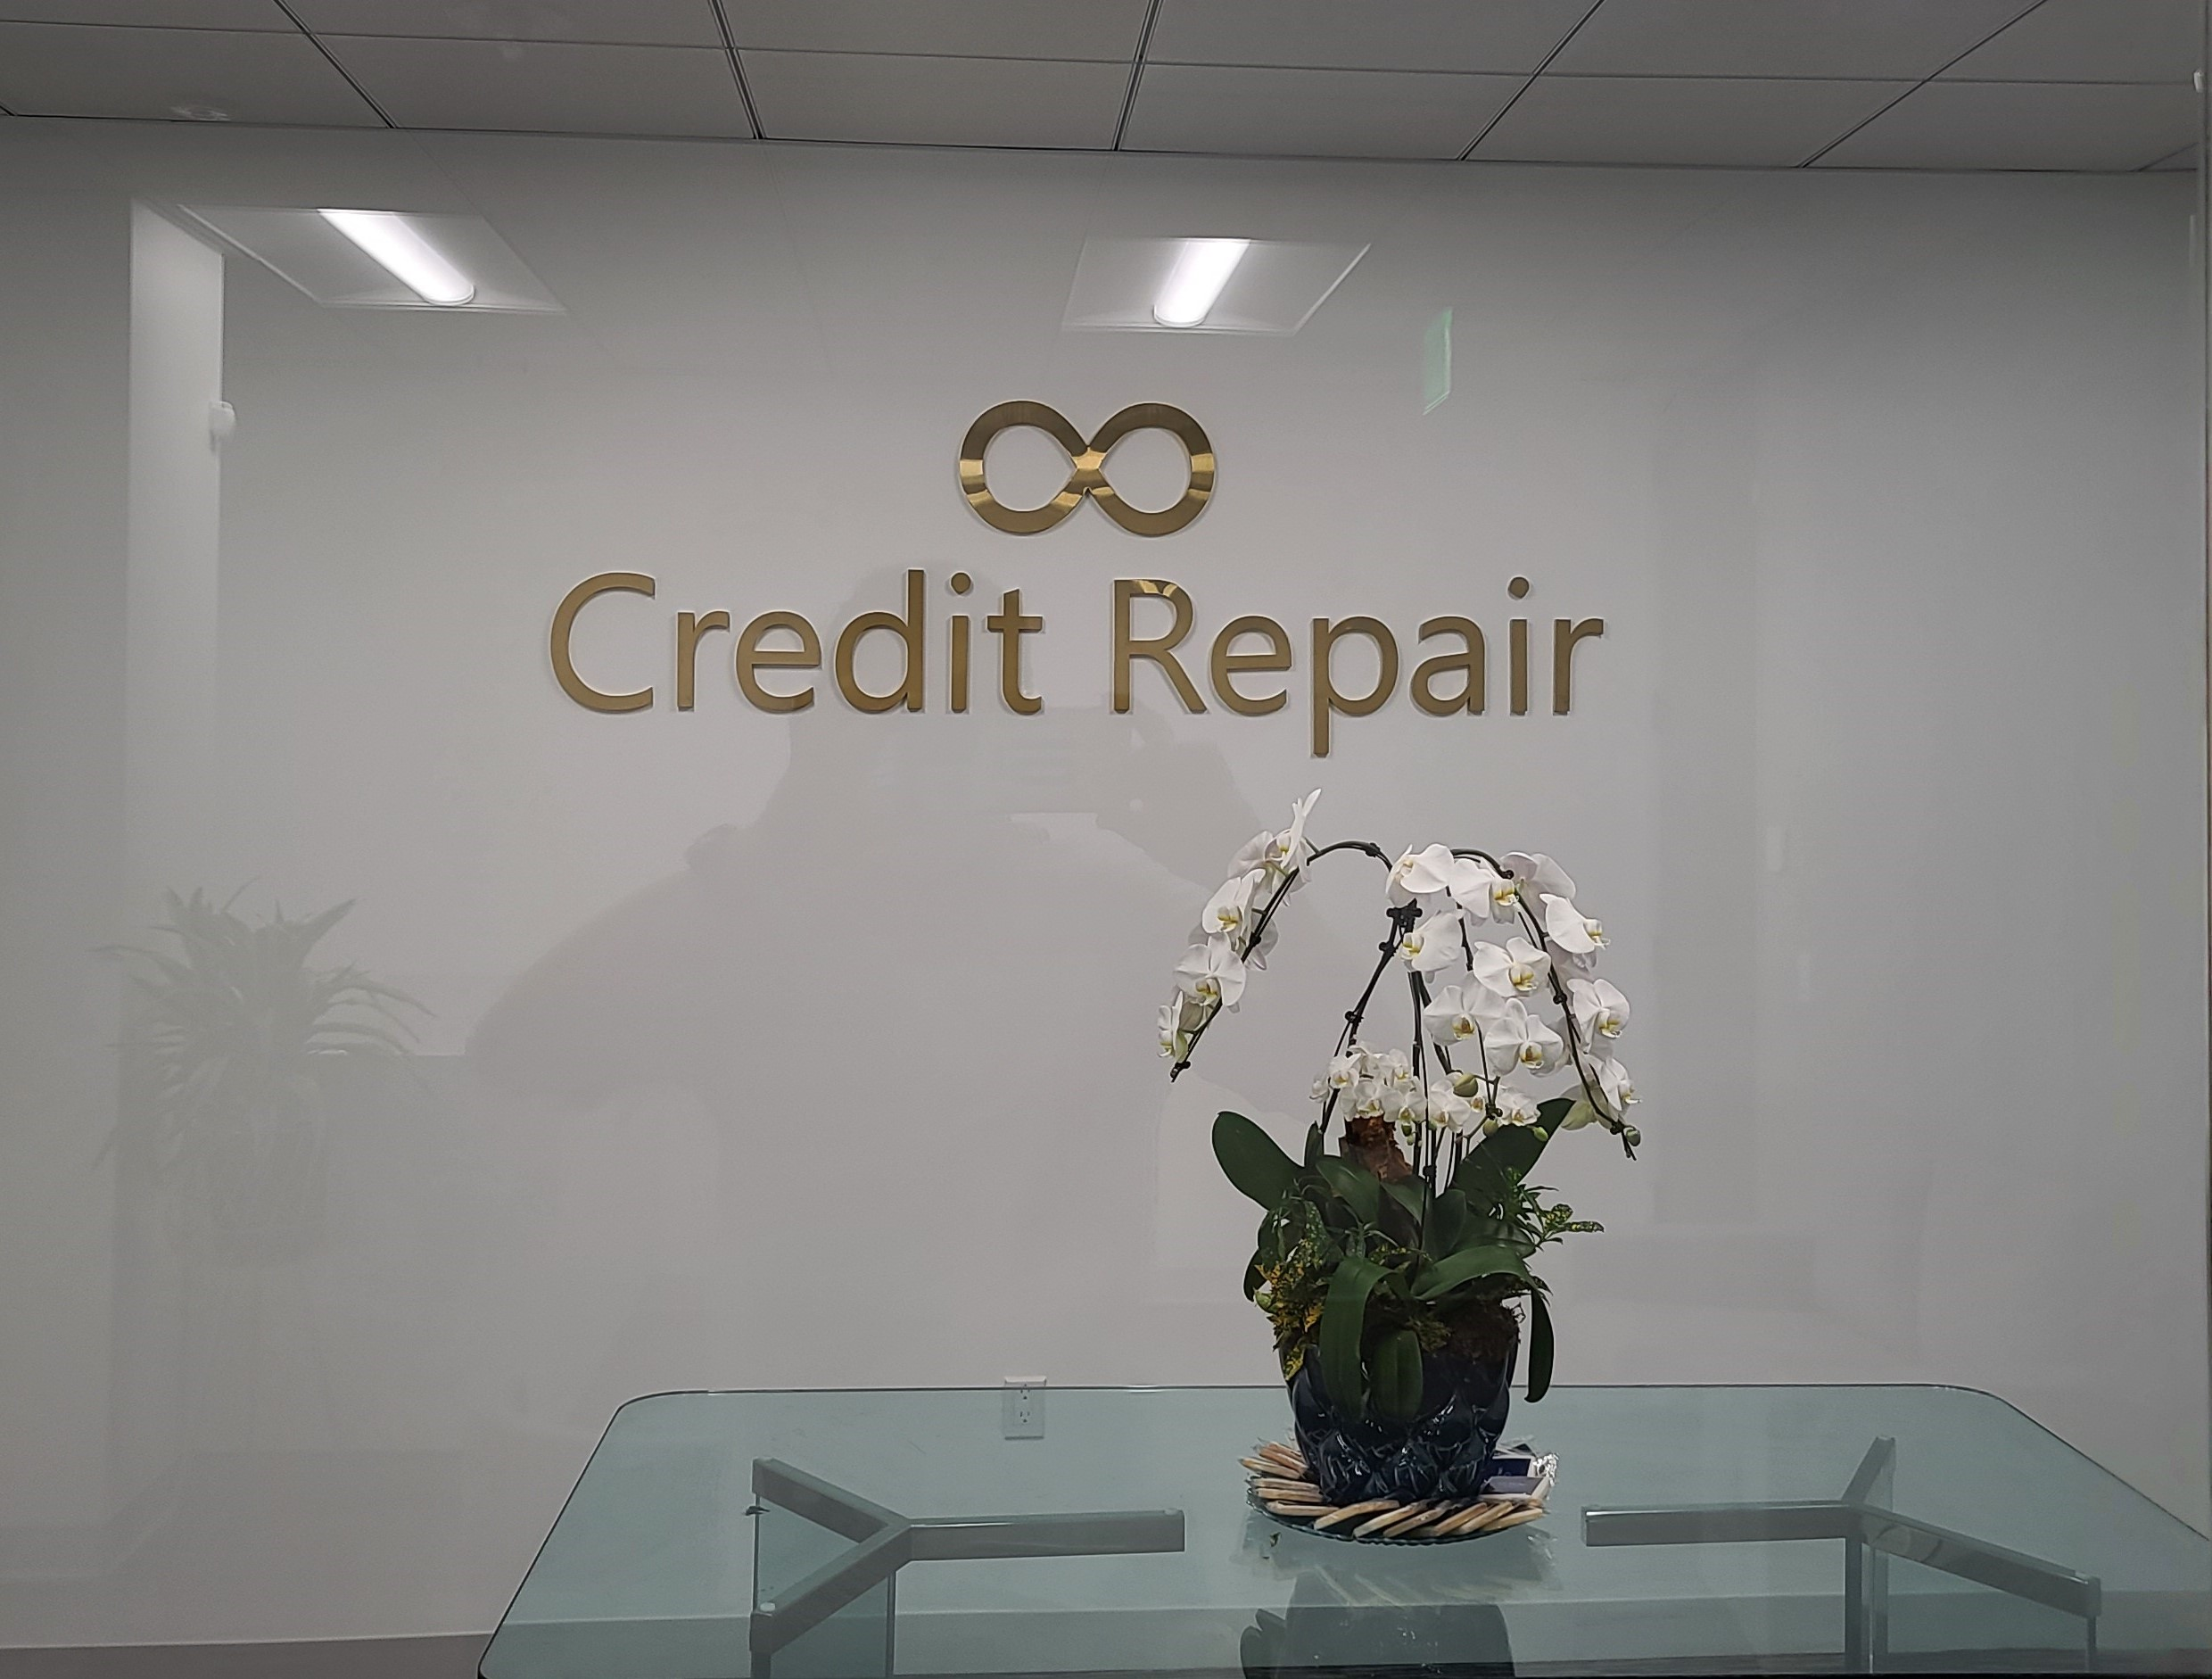 We fabricated and installed this office lobby sign for Unlimited Credit Repair's Woodland Hills Branch.